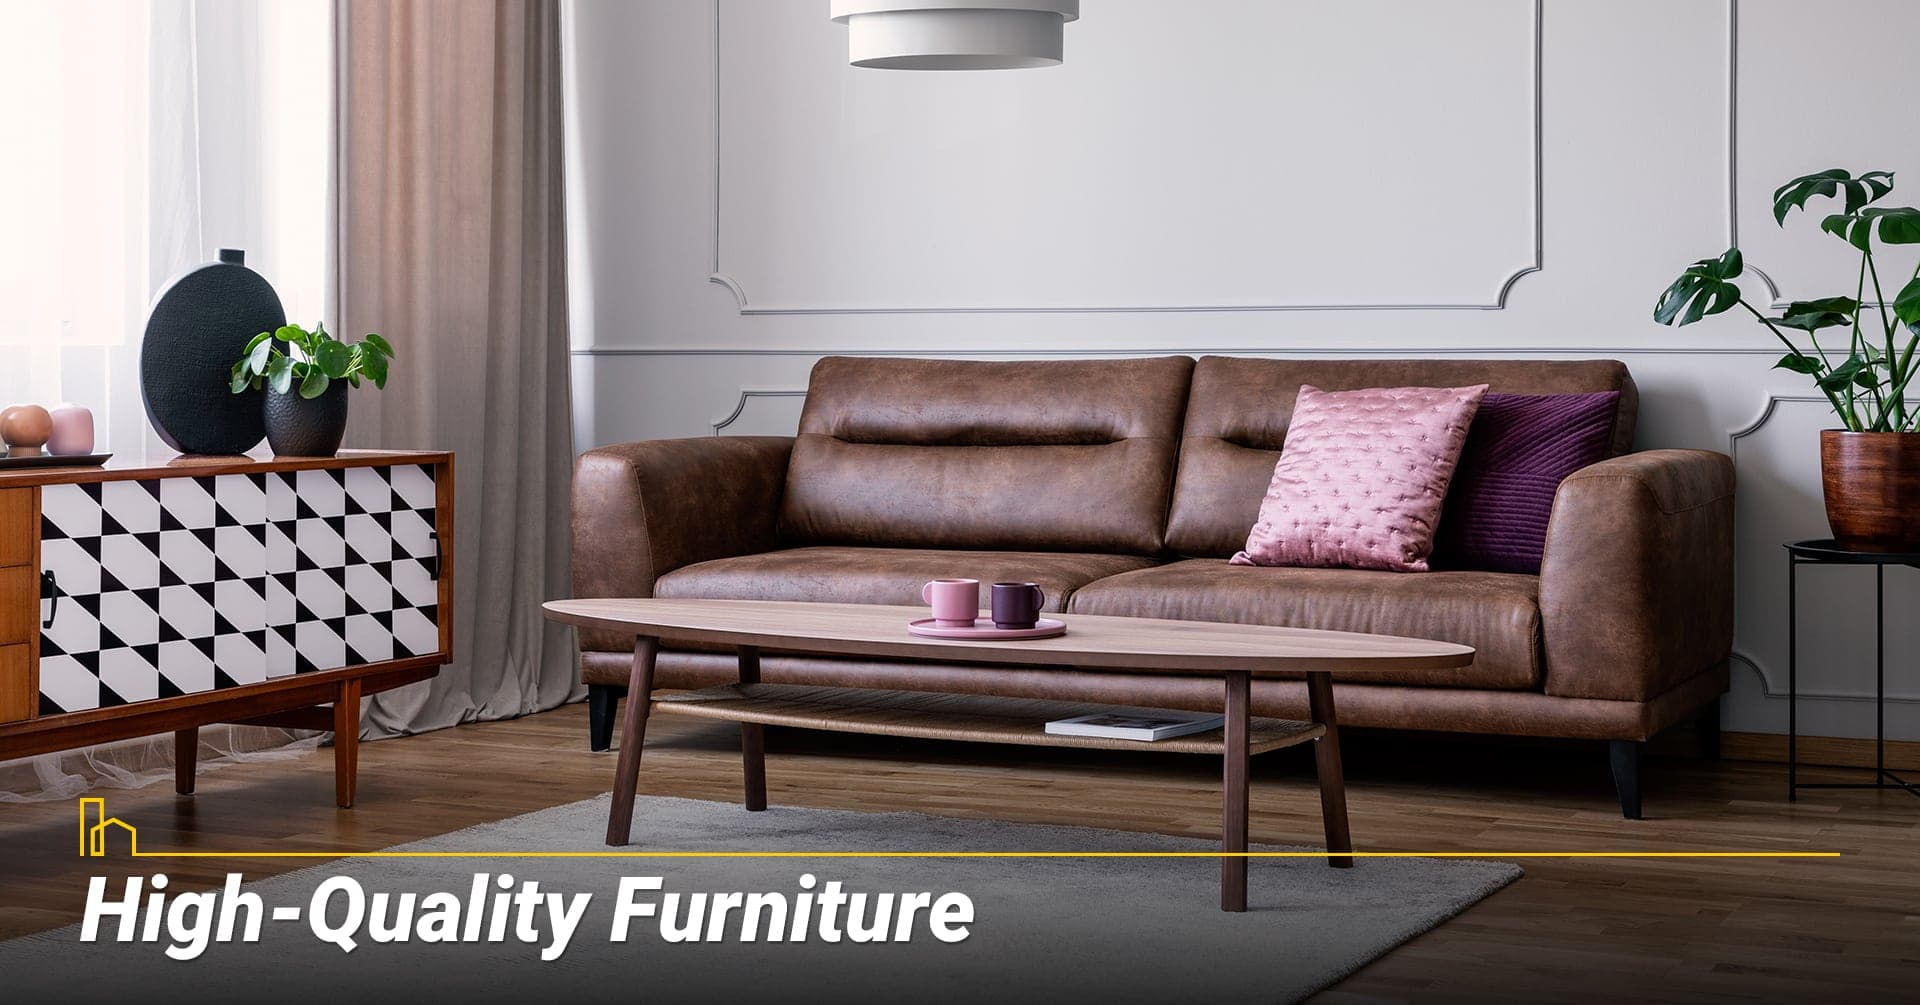 High-Quality Furniture, upgrade with quality furniture